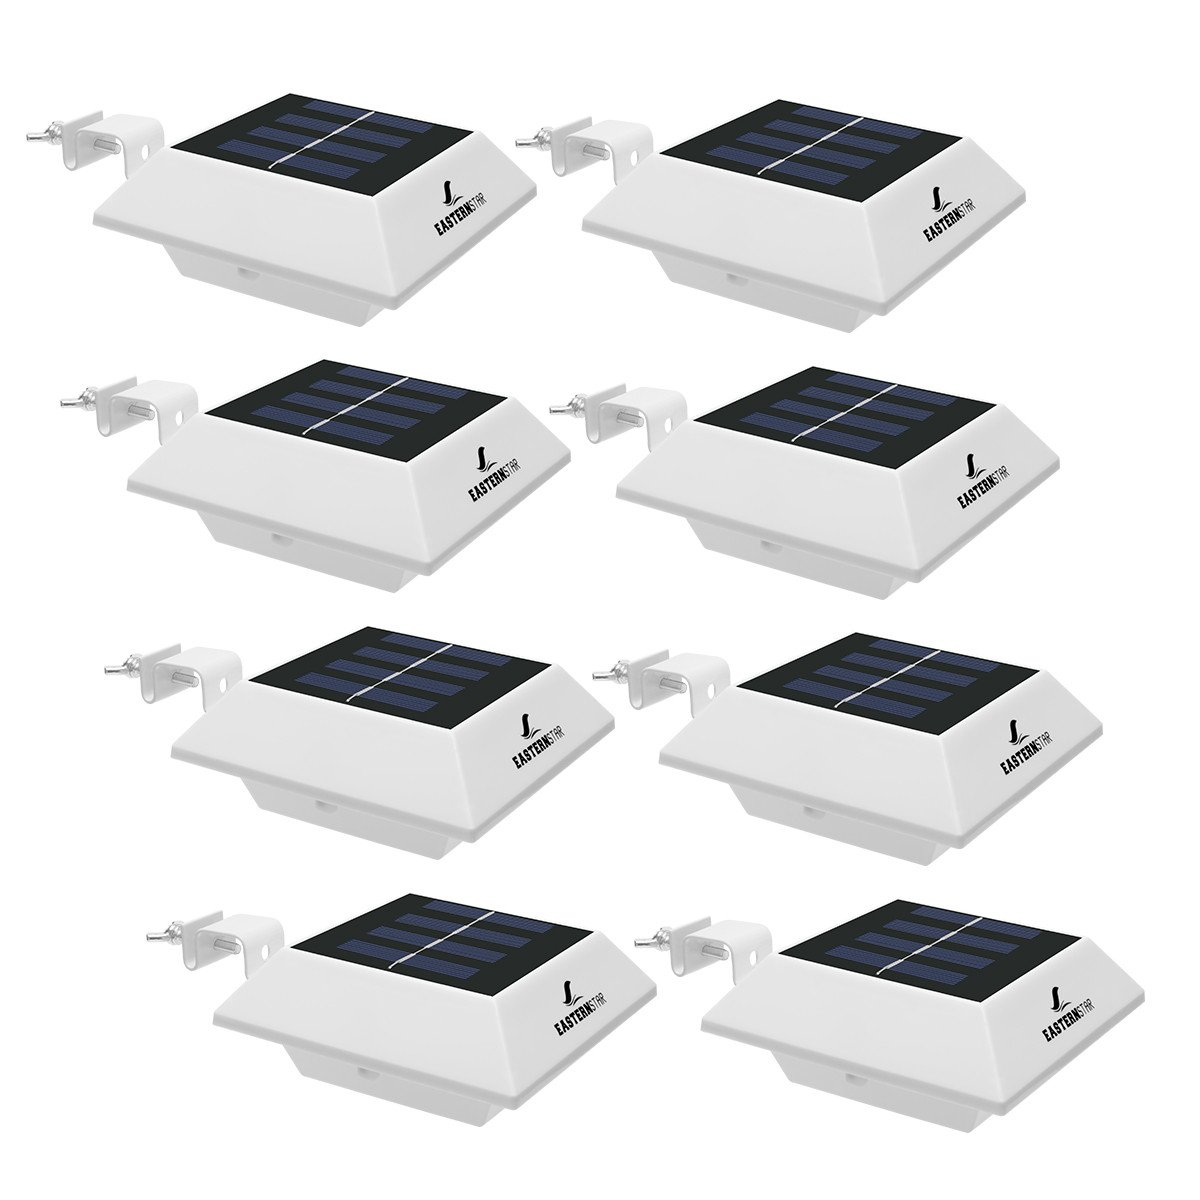 Easternstar Solar Powered Gutter Lights Outdoor,4 LED Waterproof Fence Driveway Garden Patio Roof Path Decking Night Utility Security Light White Light (8 PACK)